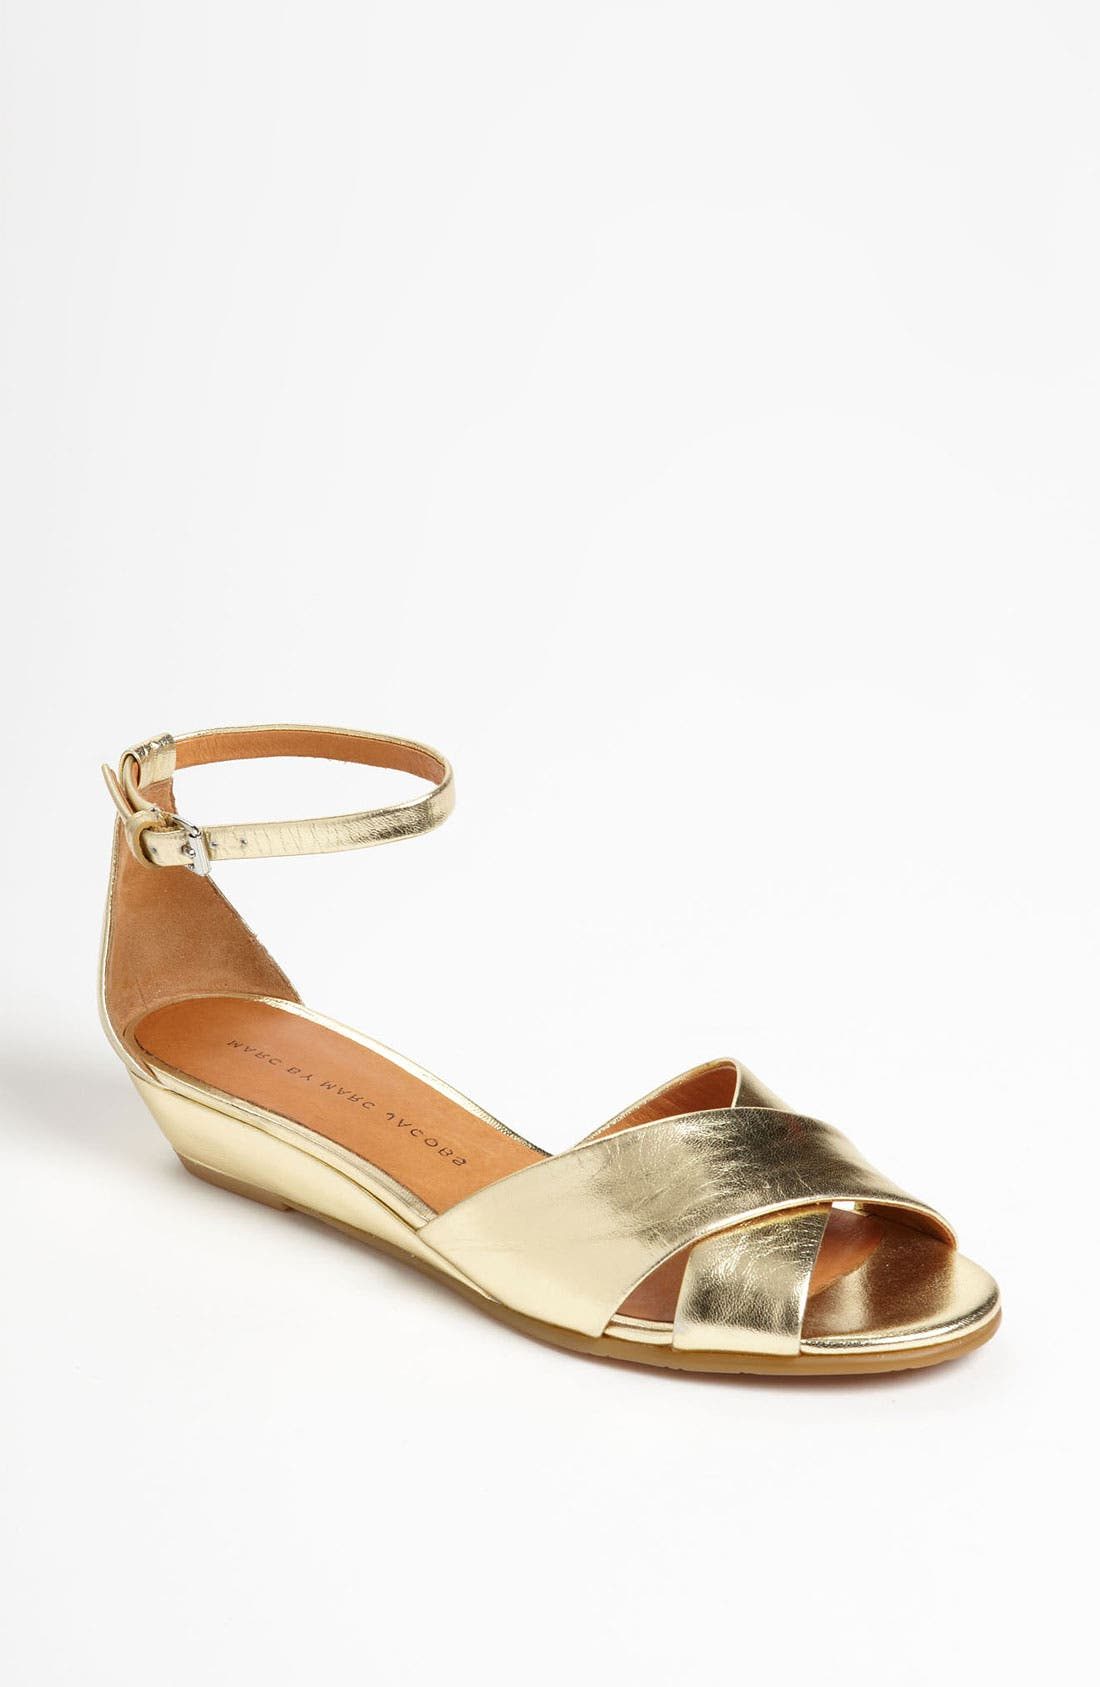 Alternate Image 1 Selected - MARC BY MARC JACOBS 'Classic' Wedge Sandal